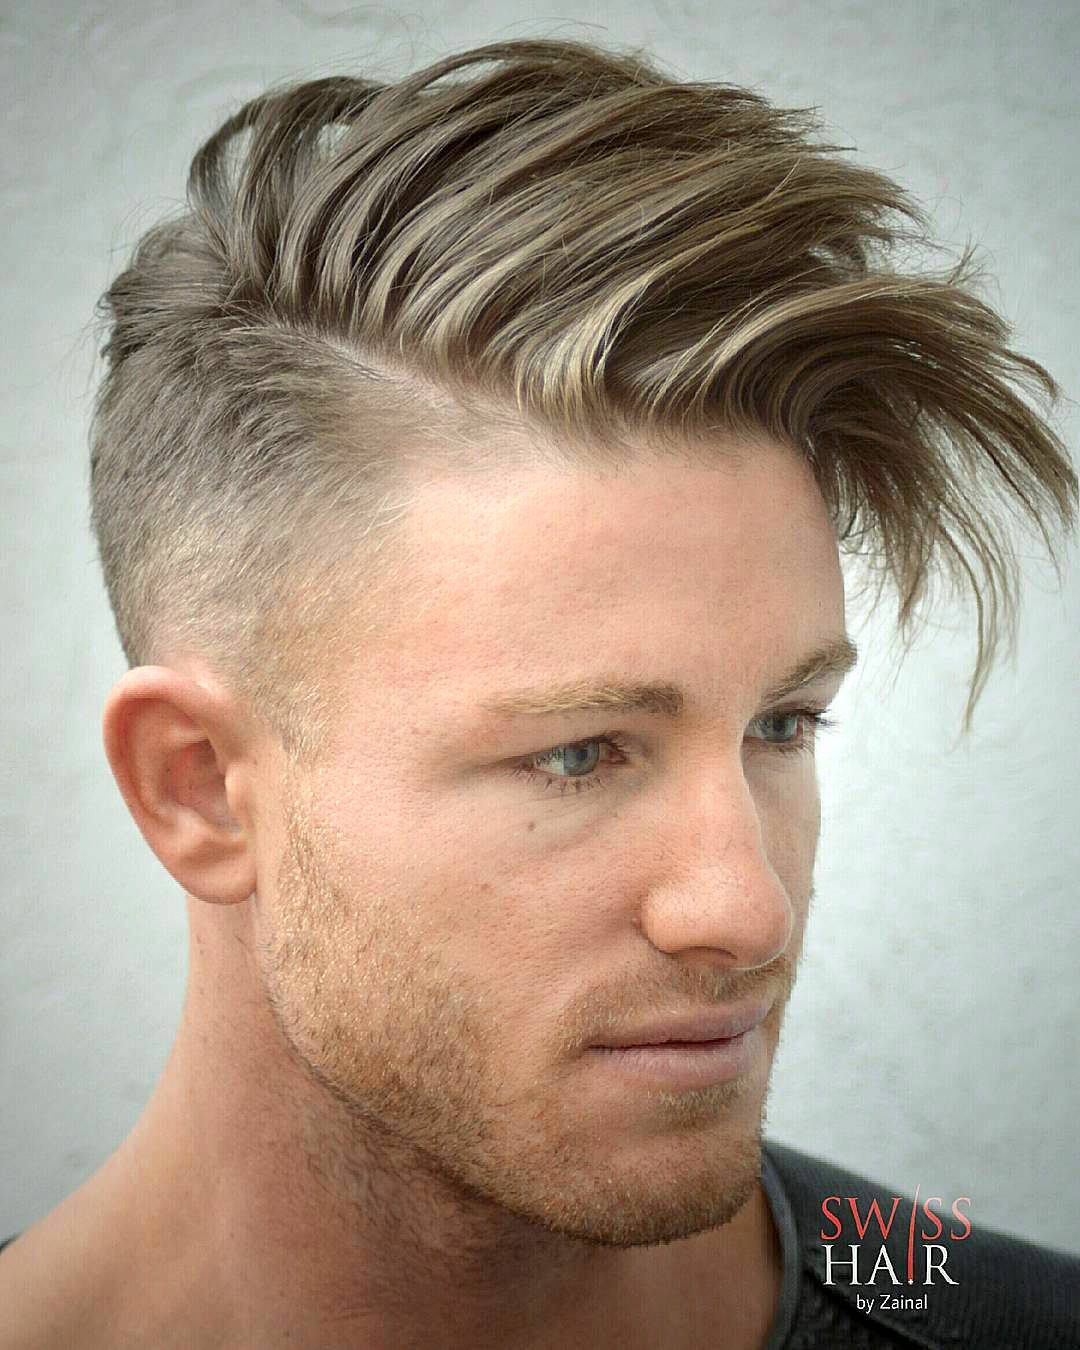 Pleasing 20 New Long Hairstyles For Men To Get In 2017 Hairstyles For Men Maxibearus